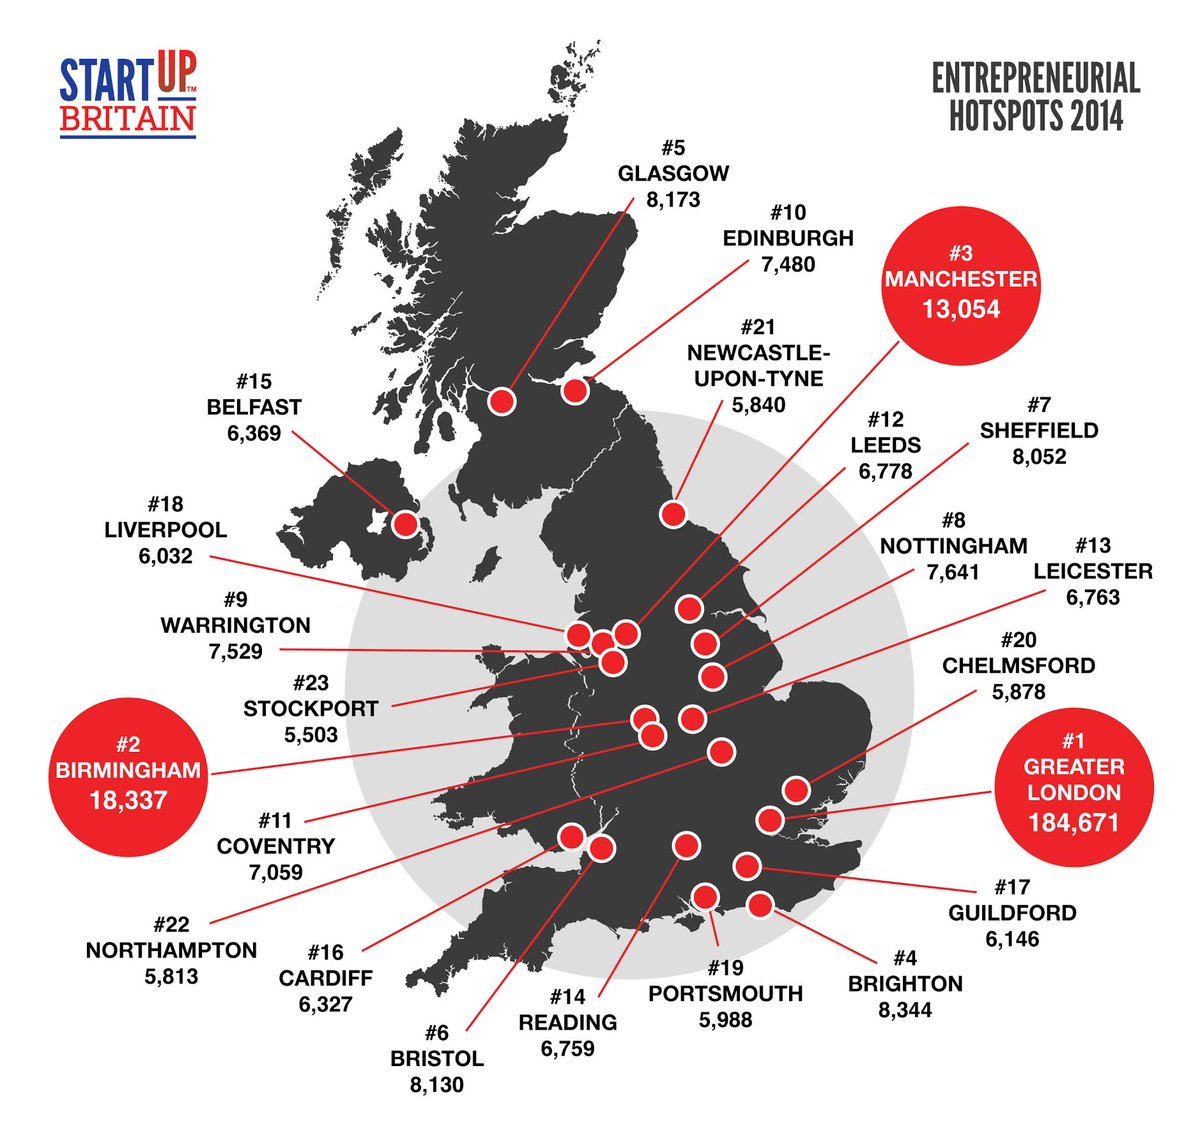 New figures reveal record breaking year for start-ups! Download the full data set & map here: http://t.co/pDzWwPkhyV http://t.co/E8oNL7QHme